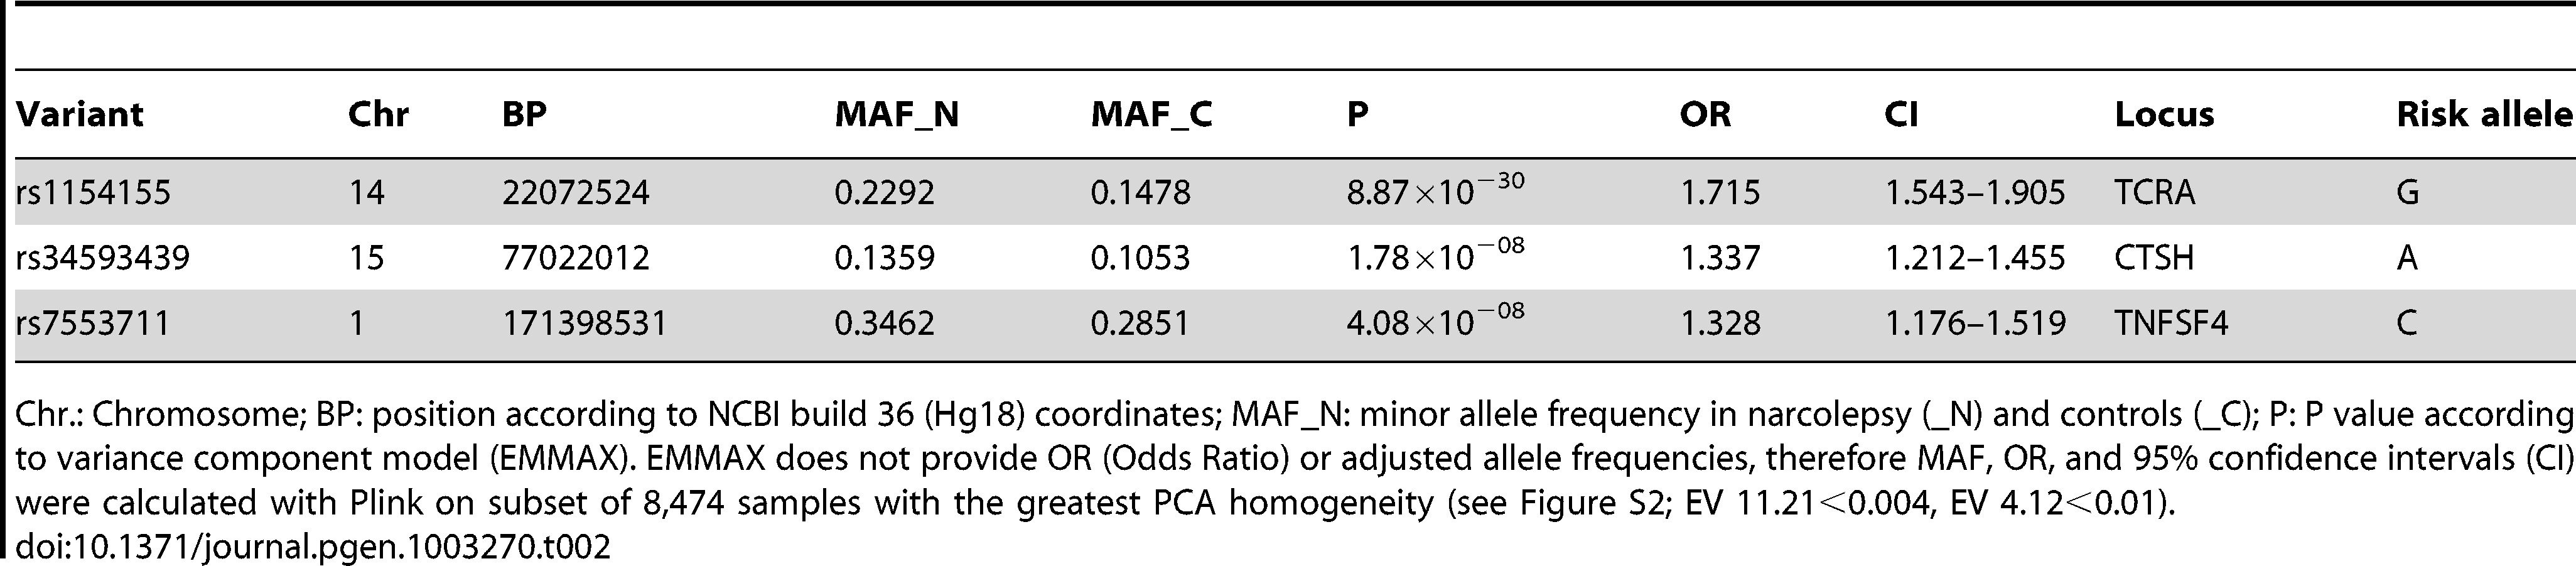 Non-HLA narcolepsy risk variant loci reaching genome-wide significance.